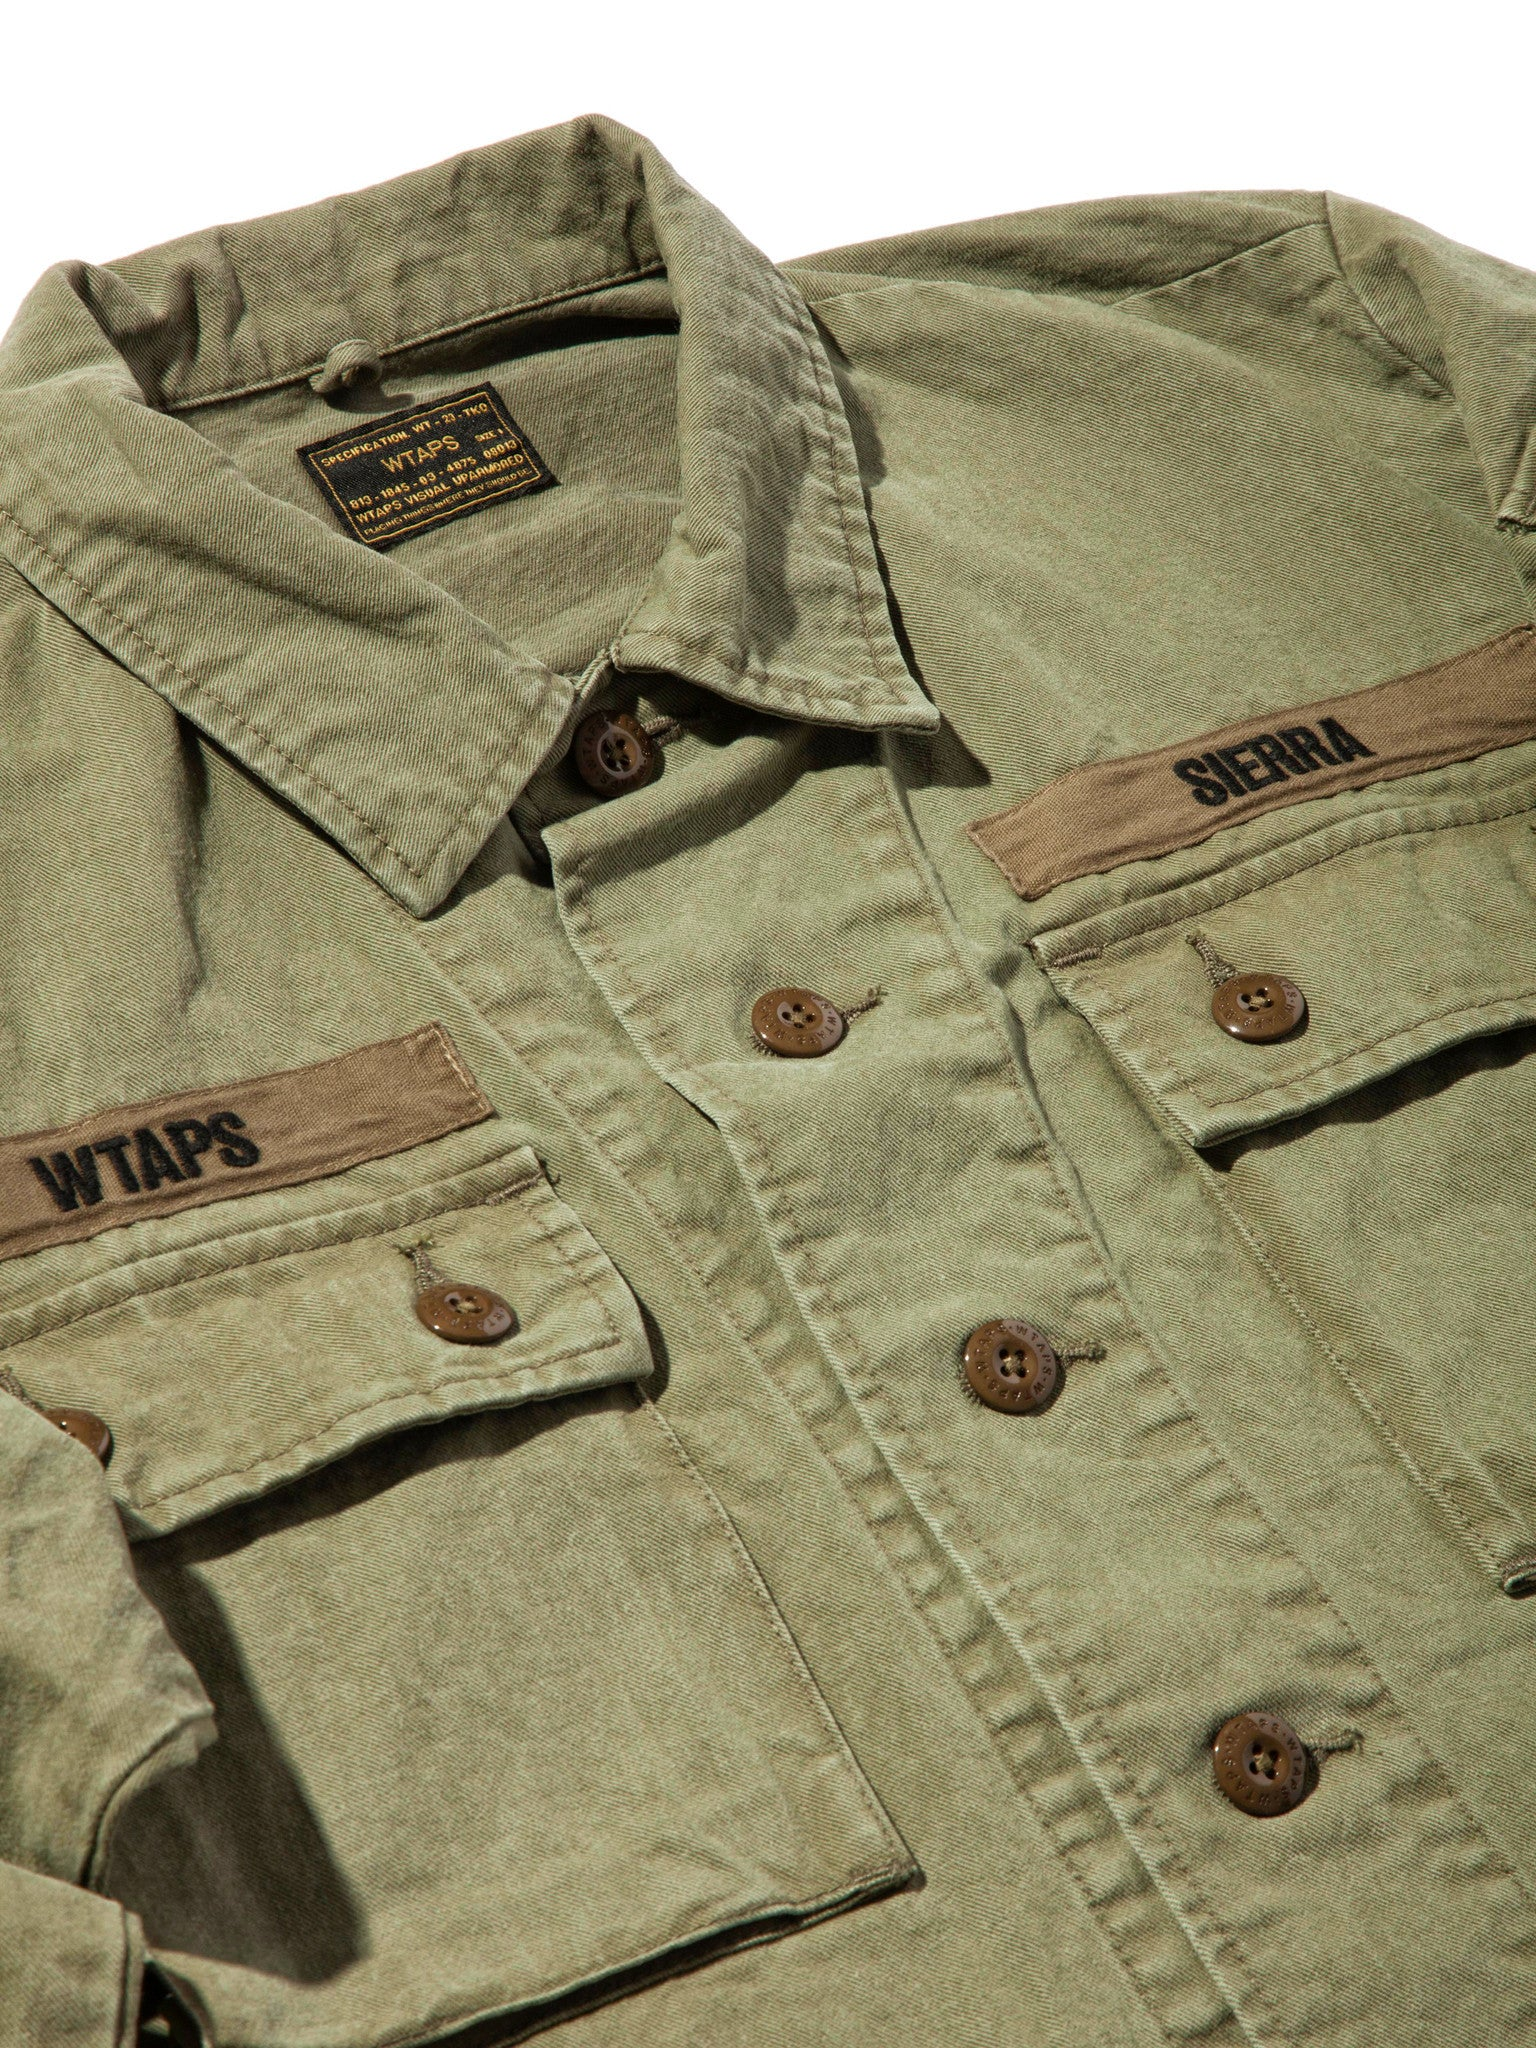 Olive Drab Jungle Shirt (Cotton Chino) 6